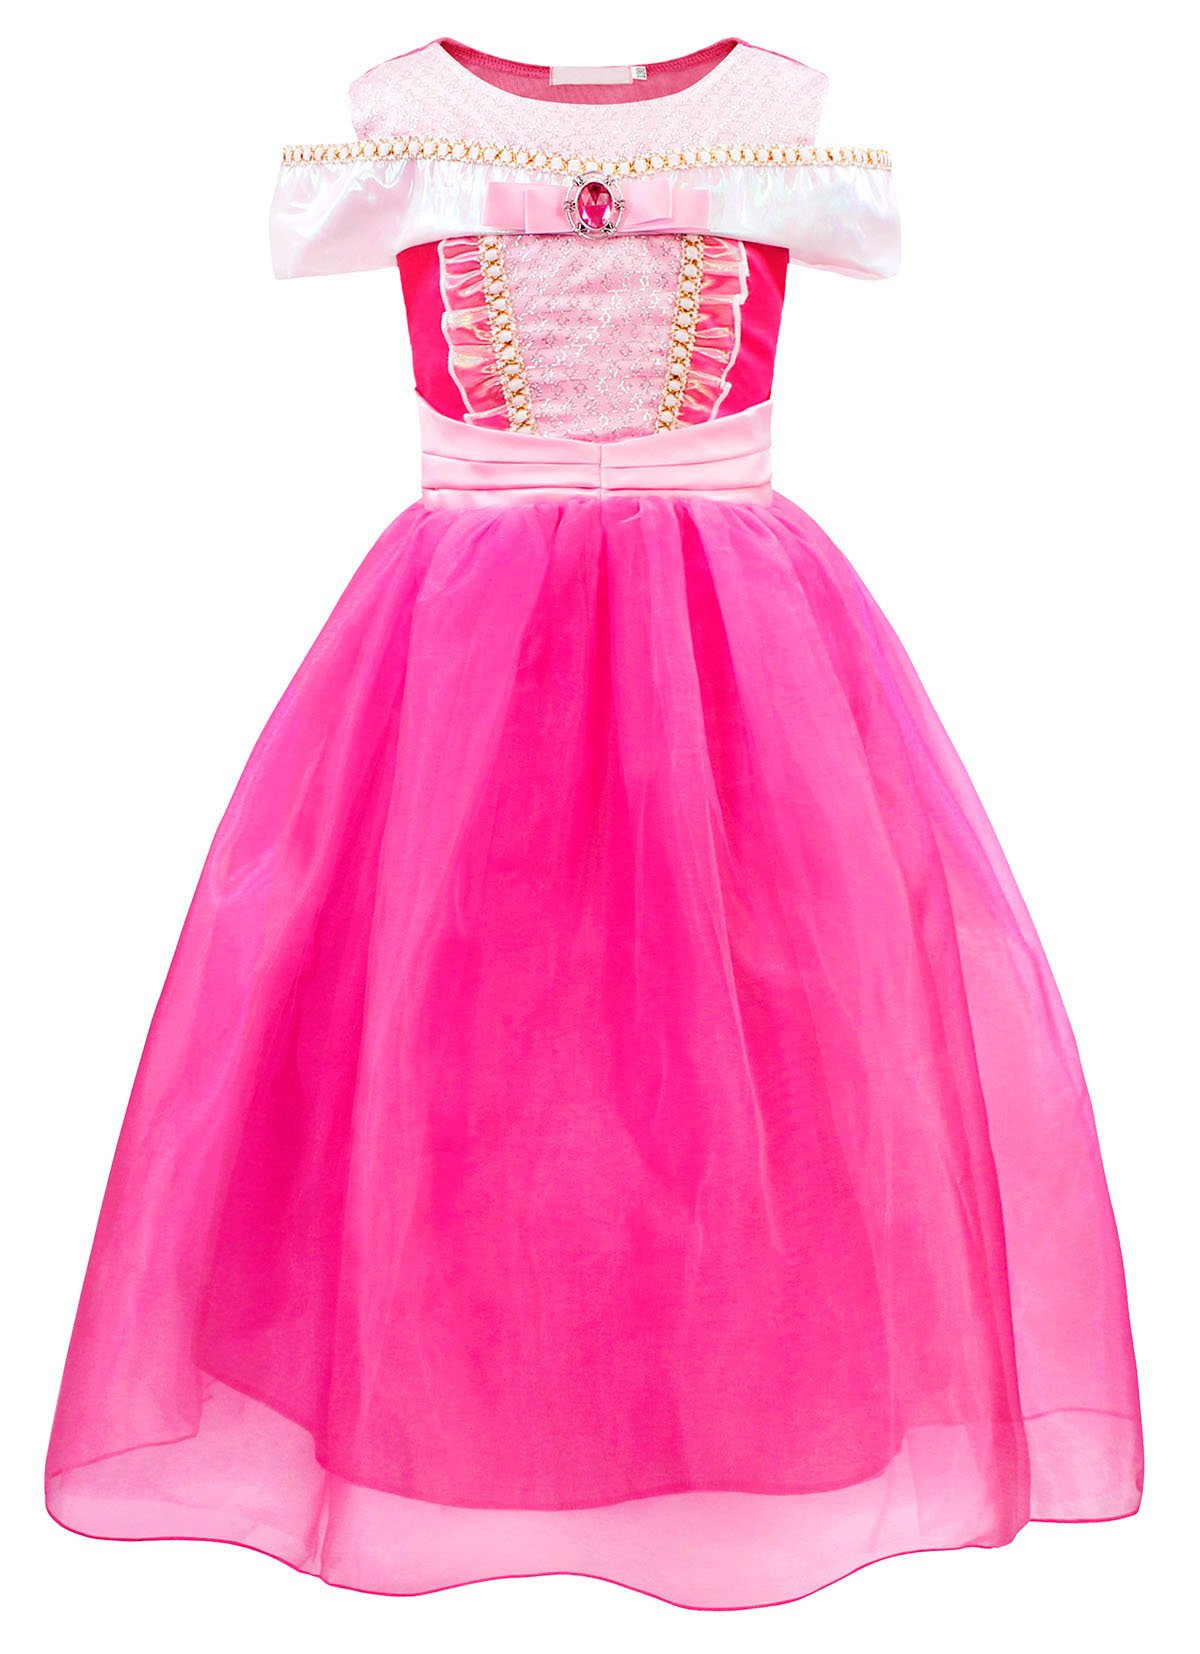 - 71PFcBxyDiL - Filare Rapunzel Aurora Costume Dress Up Princess Girls Birthday Party Cosplay Clothes